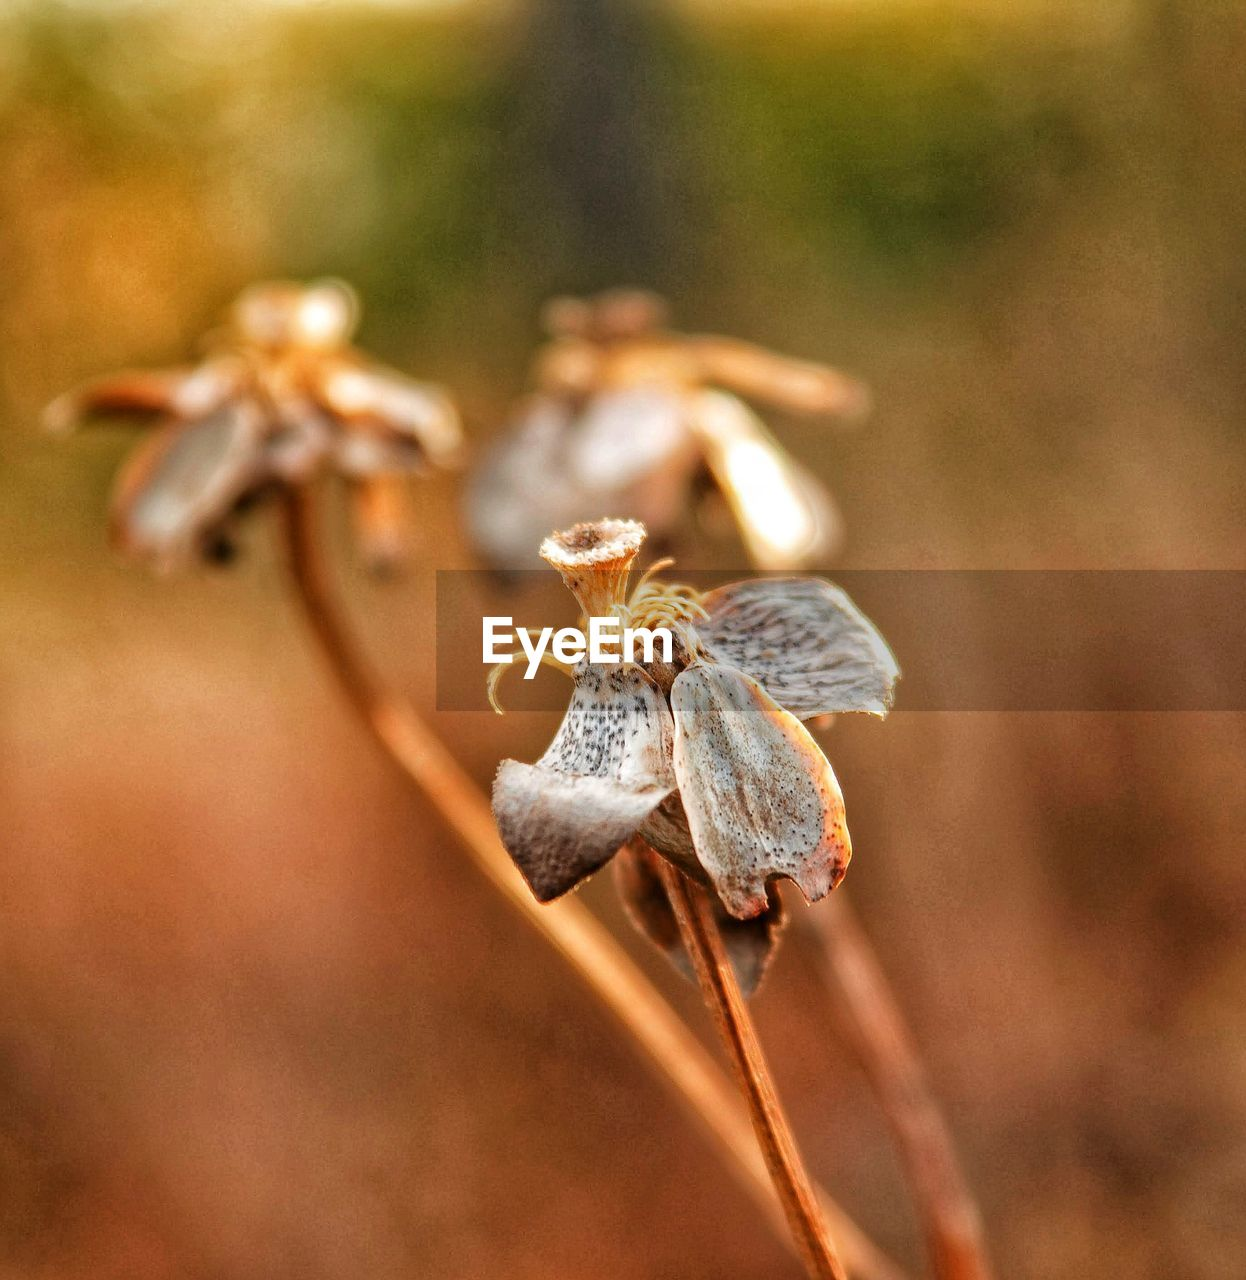 close-up, plant, selective focus, dry, day, focus on foreground, no people, growth, nature, beauty in nature, dried plant, flower, animals in the wild, invertebrate, vulnerability, animal themes, dead plant, fragility, outdoors, animal, wilted plant, dried